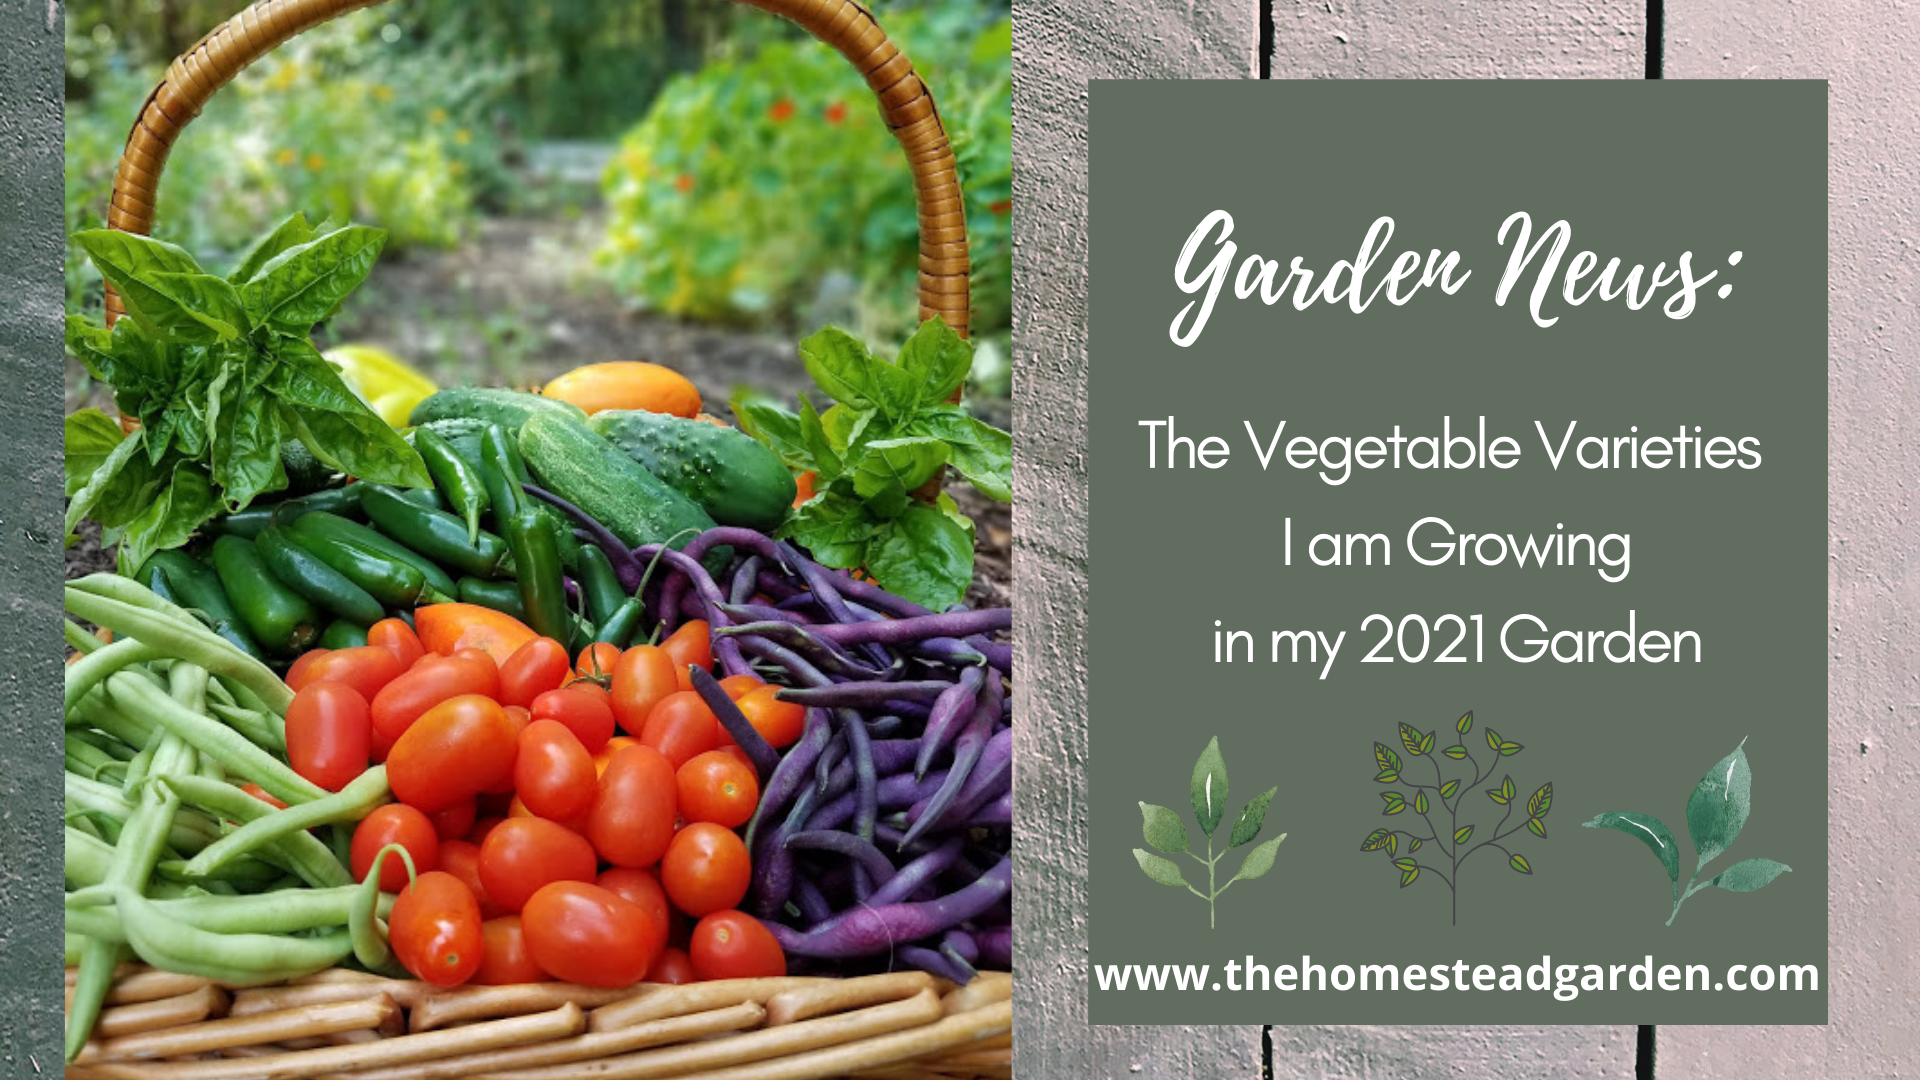 My 2021 Garden Vegetable Varieties